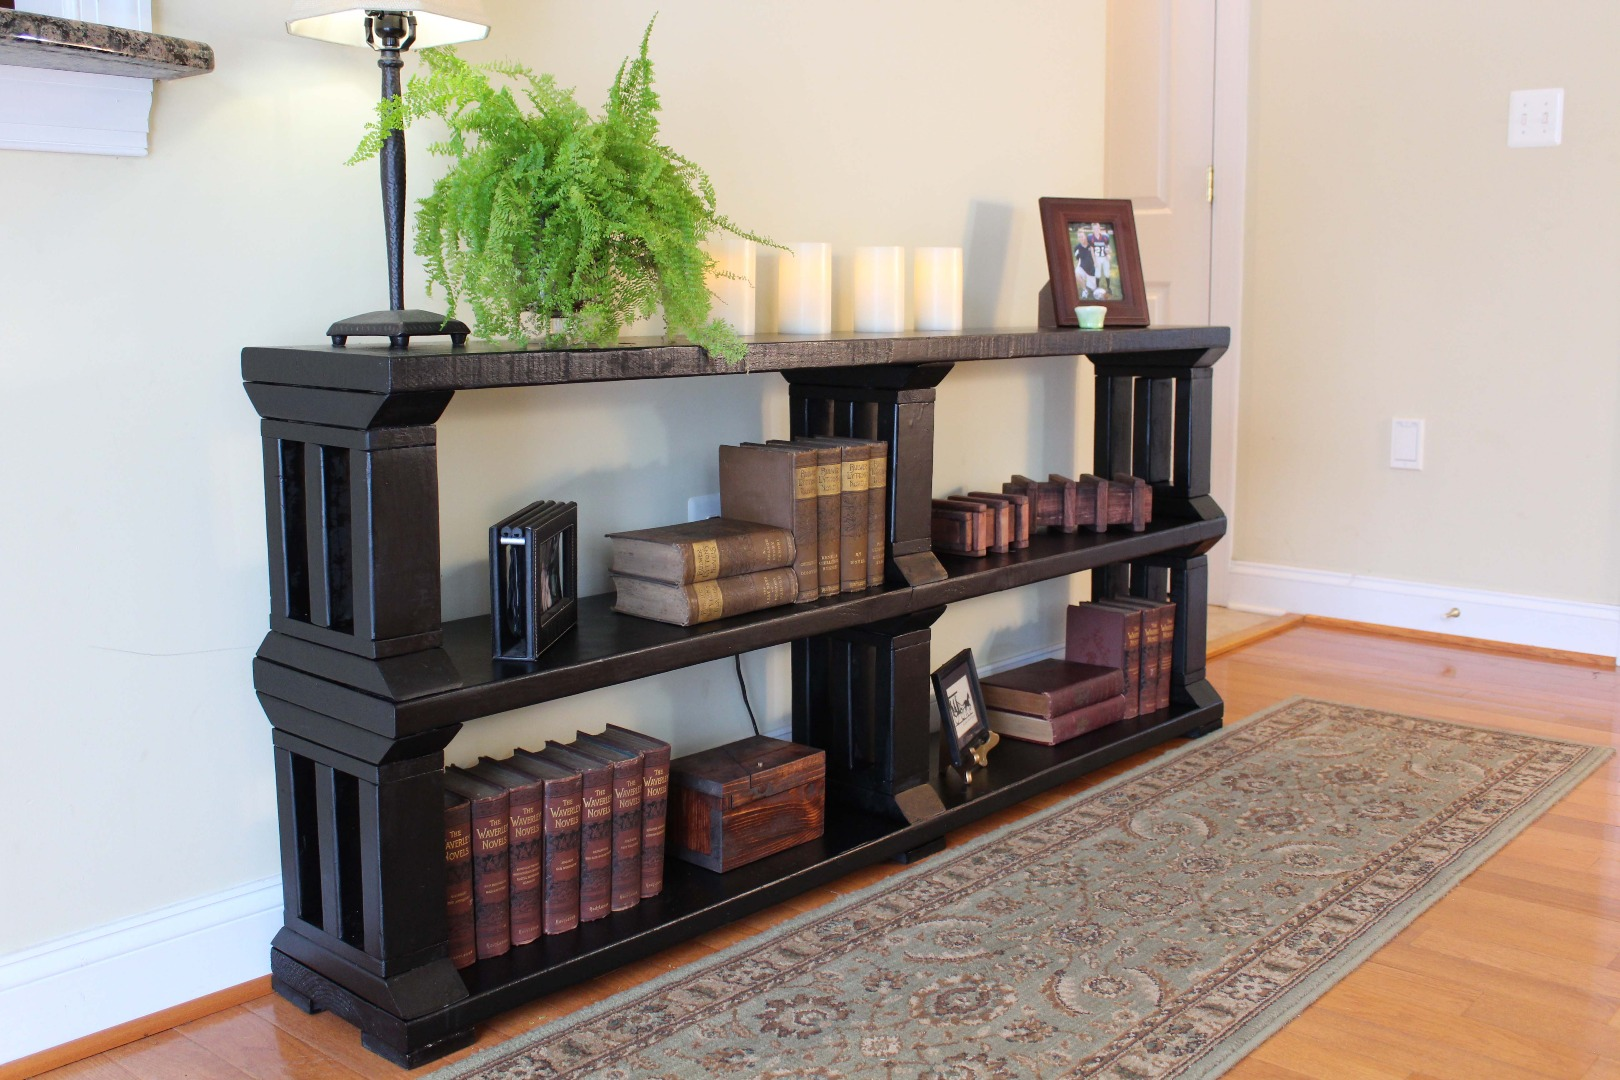 Picture of Rustic Book Shelf or TV Stand